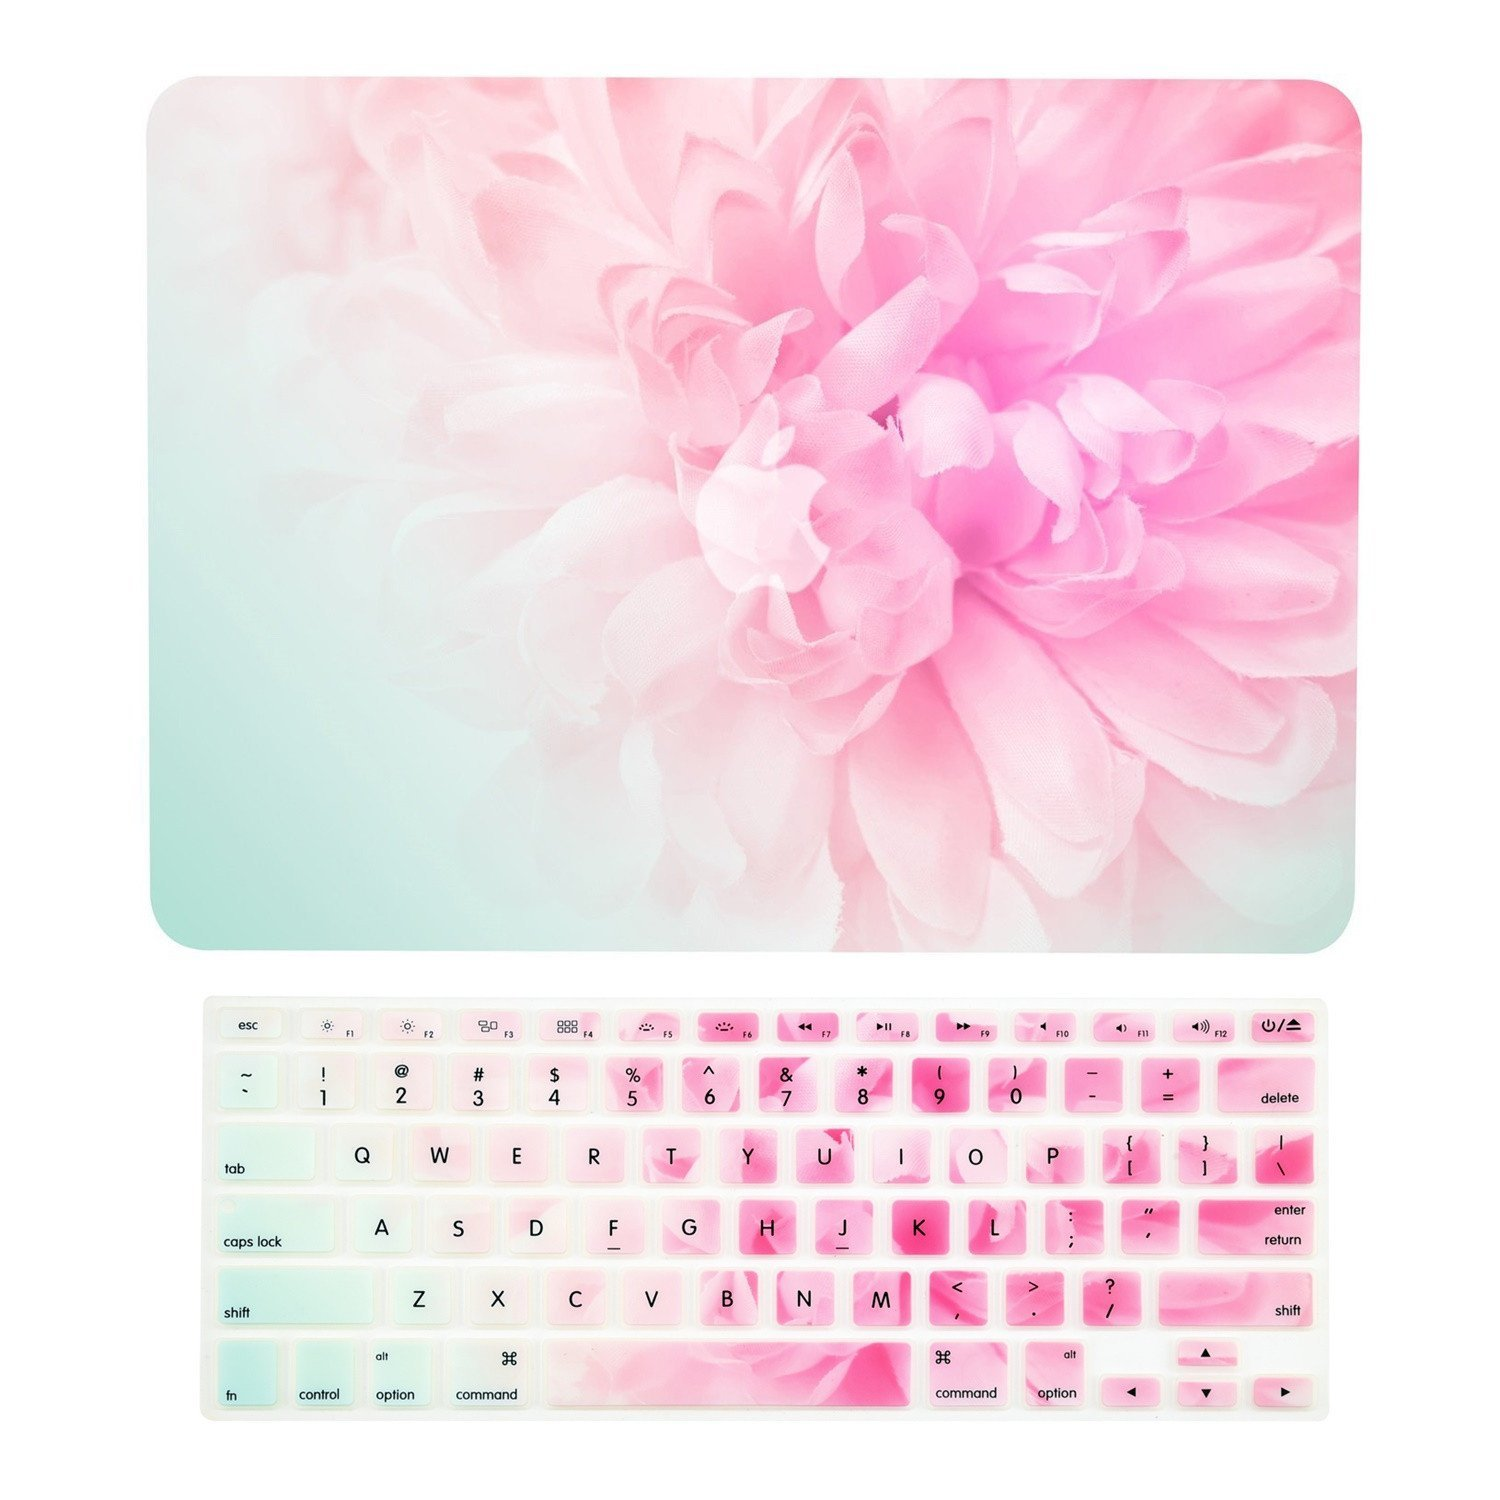 TOP CASE – 2 in 1 Bundle Deal Floral Pattern Rubberized Hard Case + Keyboard Cover Compatible with Apple MacBook Air 13'' (13'' Diagonally) Model: A1369 / A1466 - Pink Peony on Turquoise Base